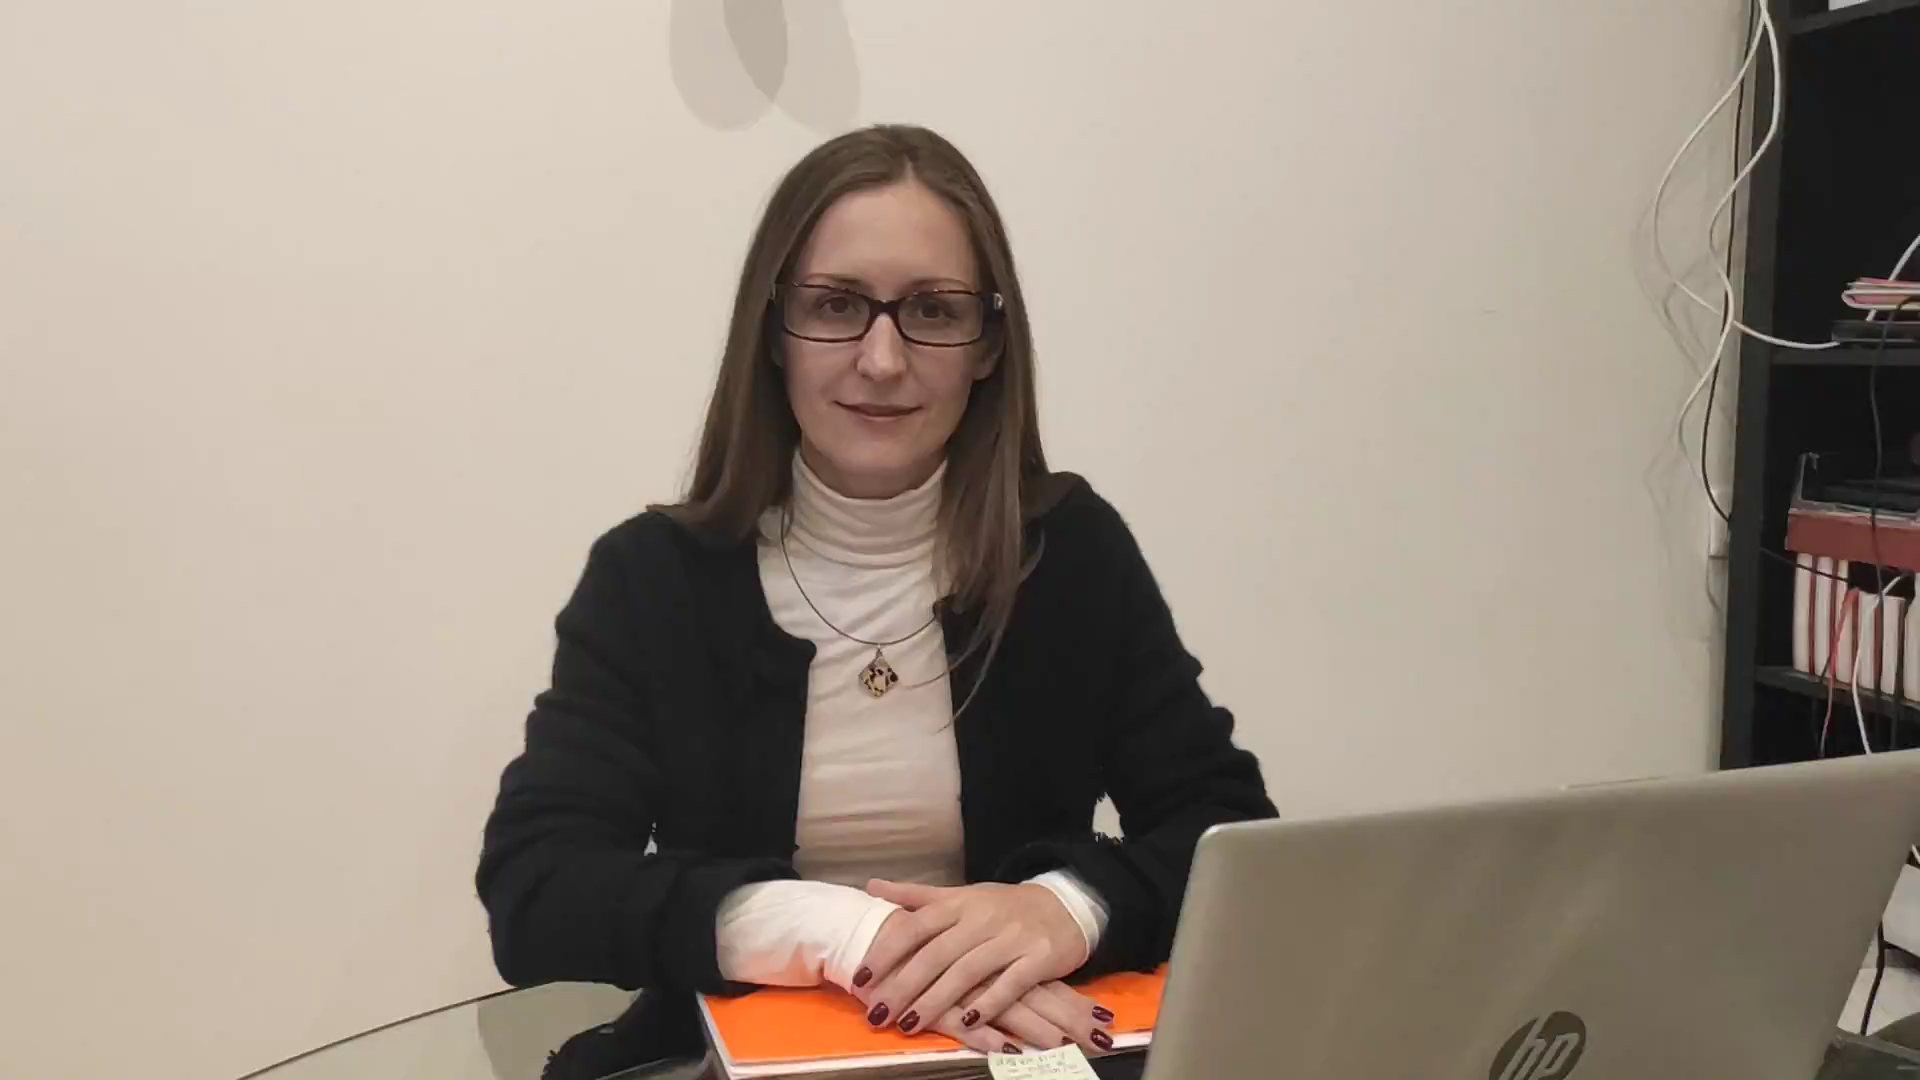 Globus stories: An interview with Tatiana, our HR manager